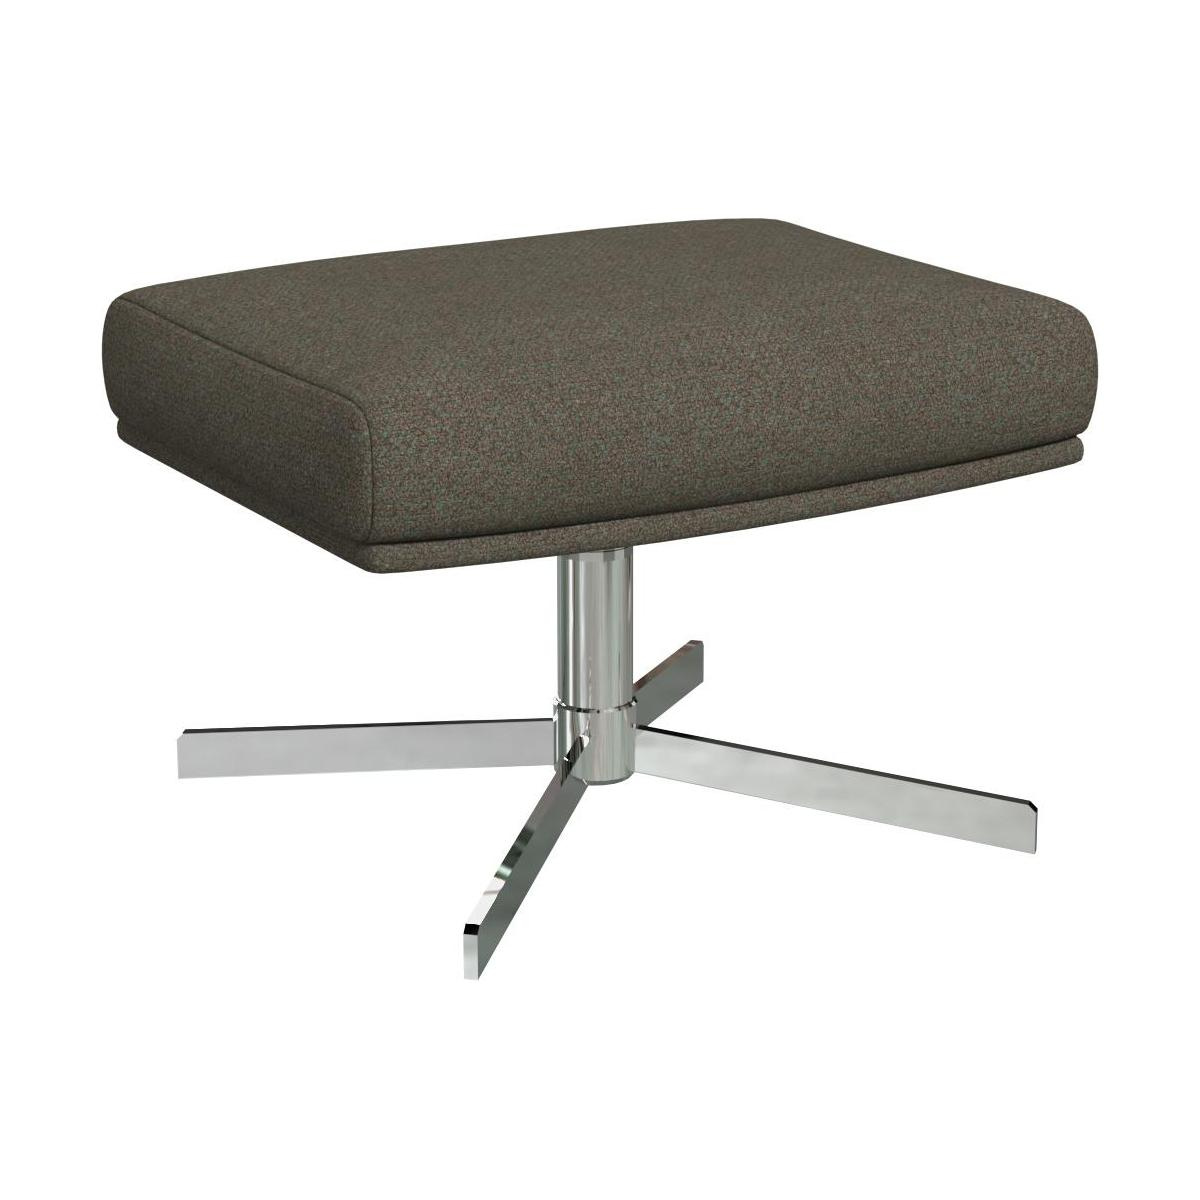 Footstool in Lecce fabric, slade grey with metal cross leg n°1